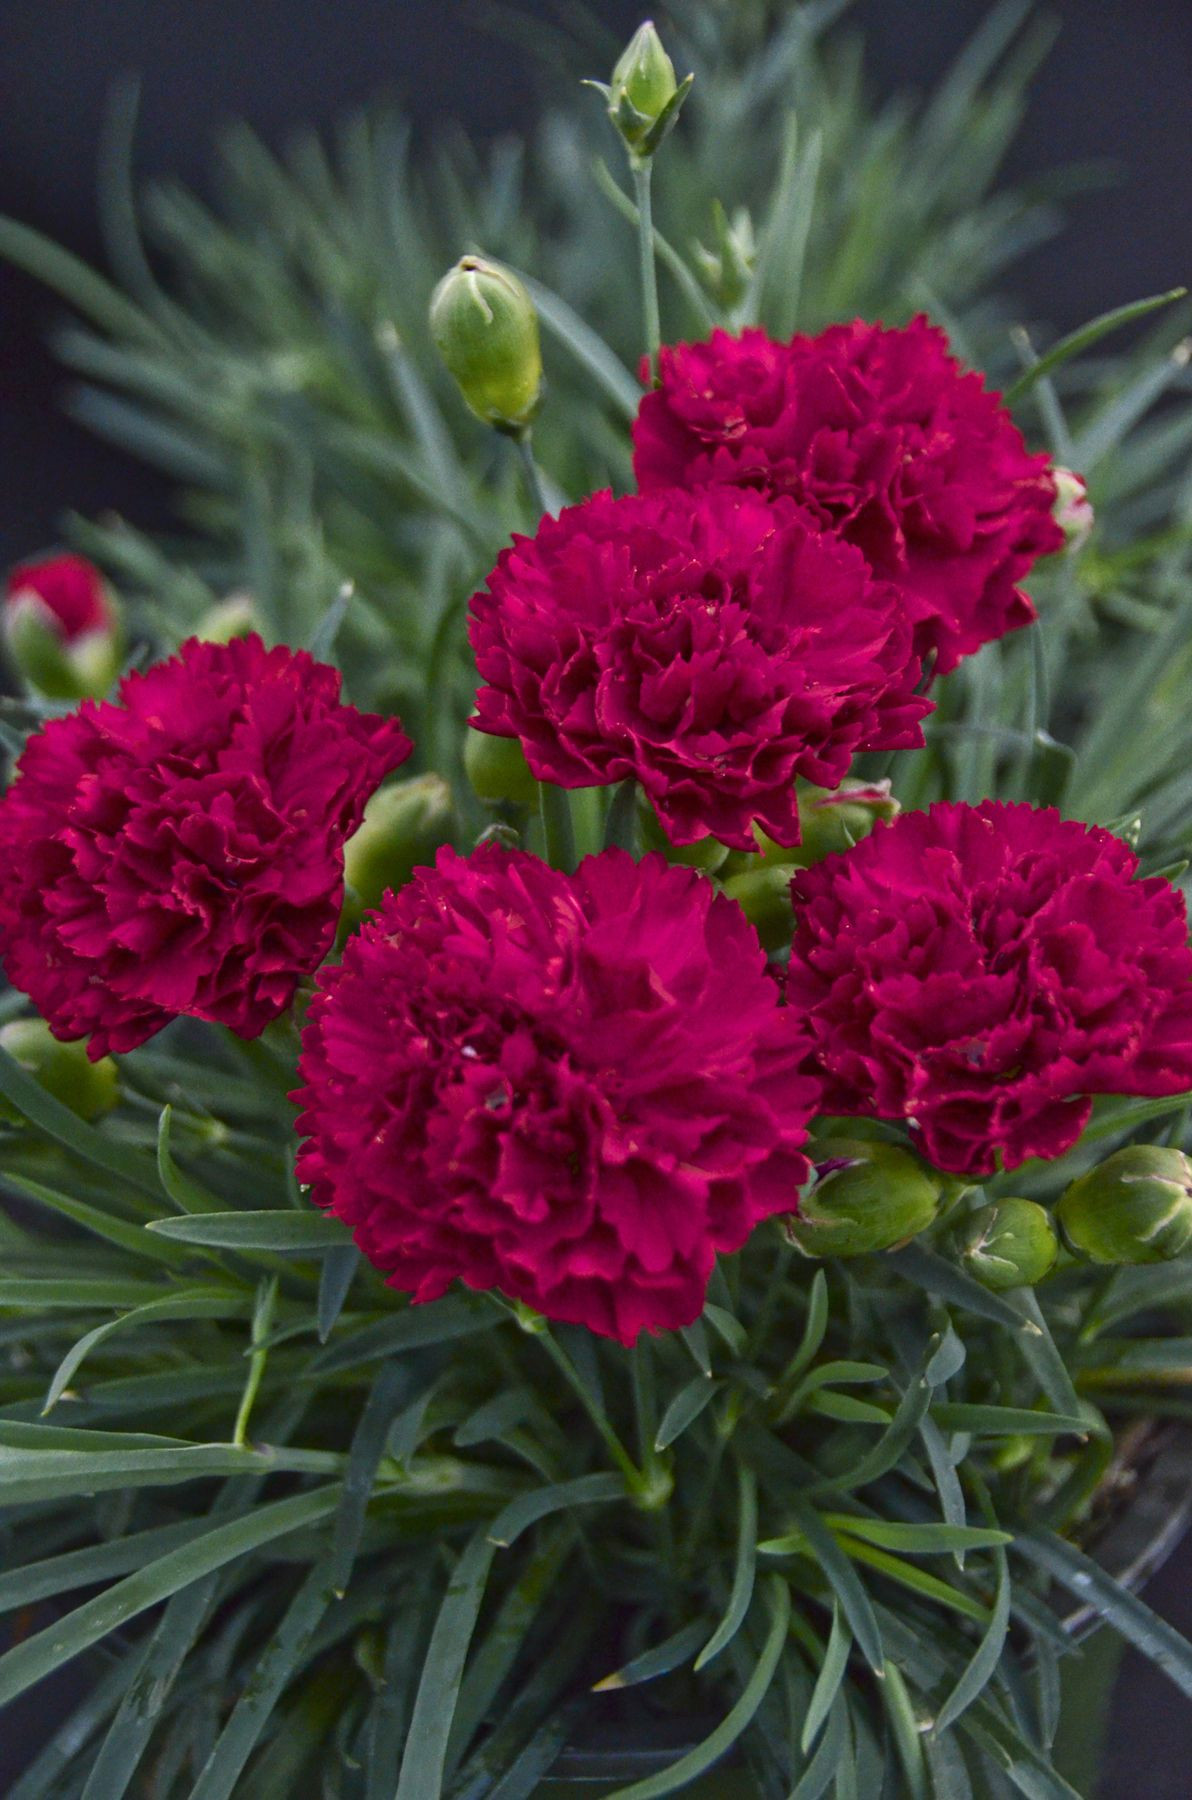 Fruit Punch Cranberry Cocktail produces carnation like double hot magenta pink flowers atop a low mound of grey green foliage